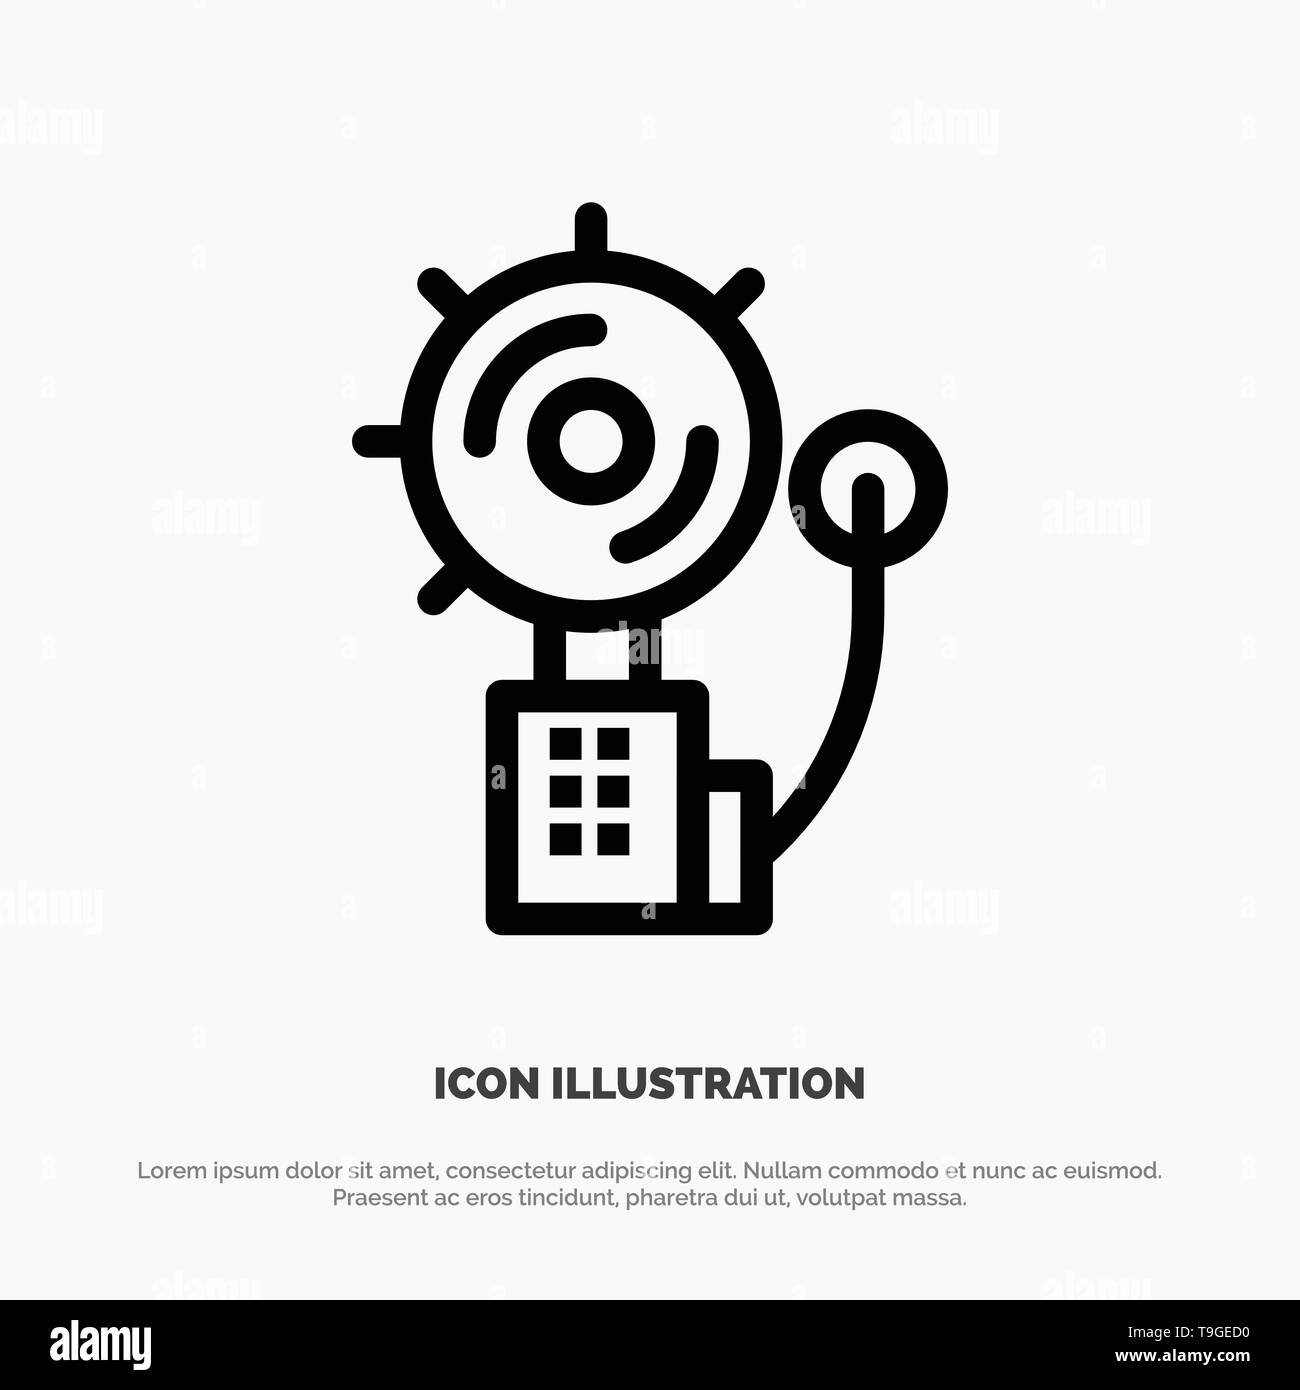 Alarm, Alert, Bell, Fire, Intruder Line Icon Vector Stock Vector